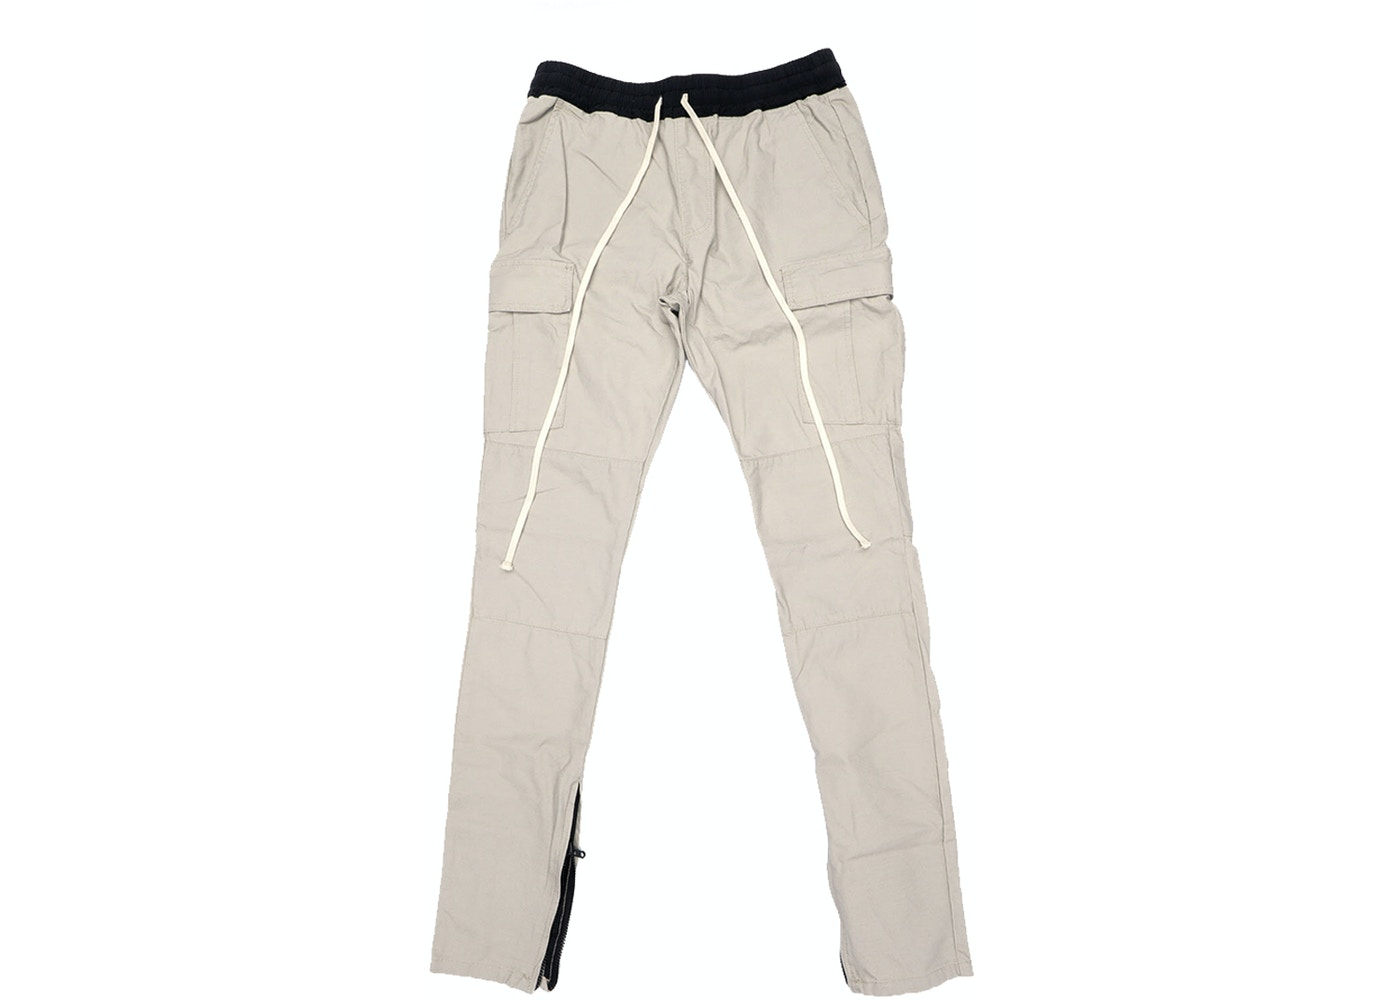 street price enjoy lowest price shop for genuine FEAR OF GOD Essentials Drawstring Cargo Pants Silver Grey